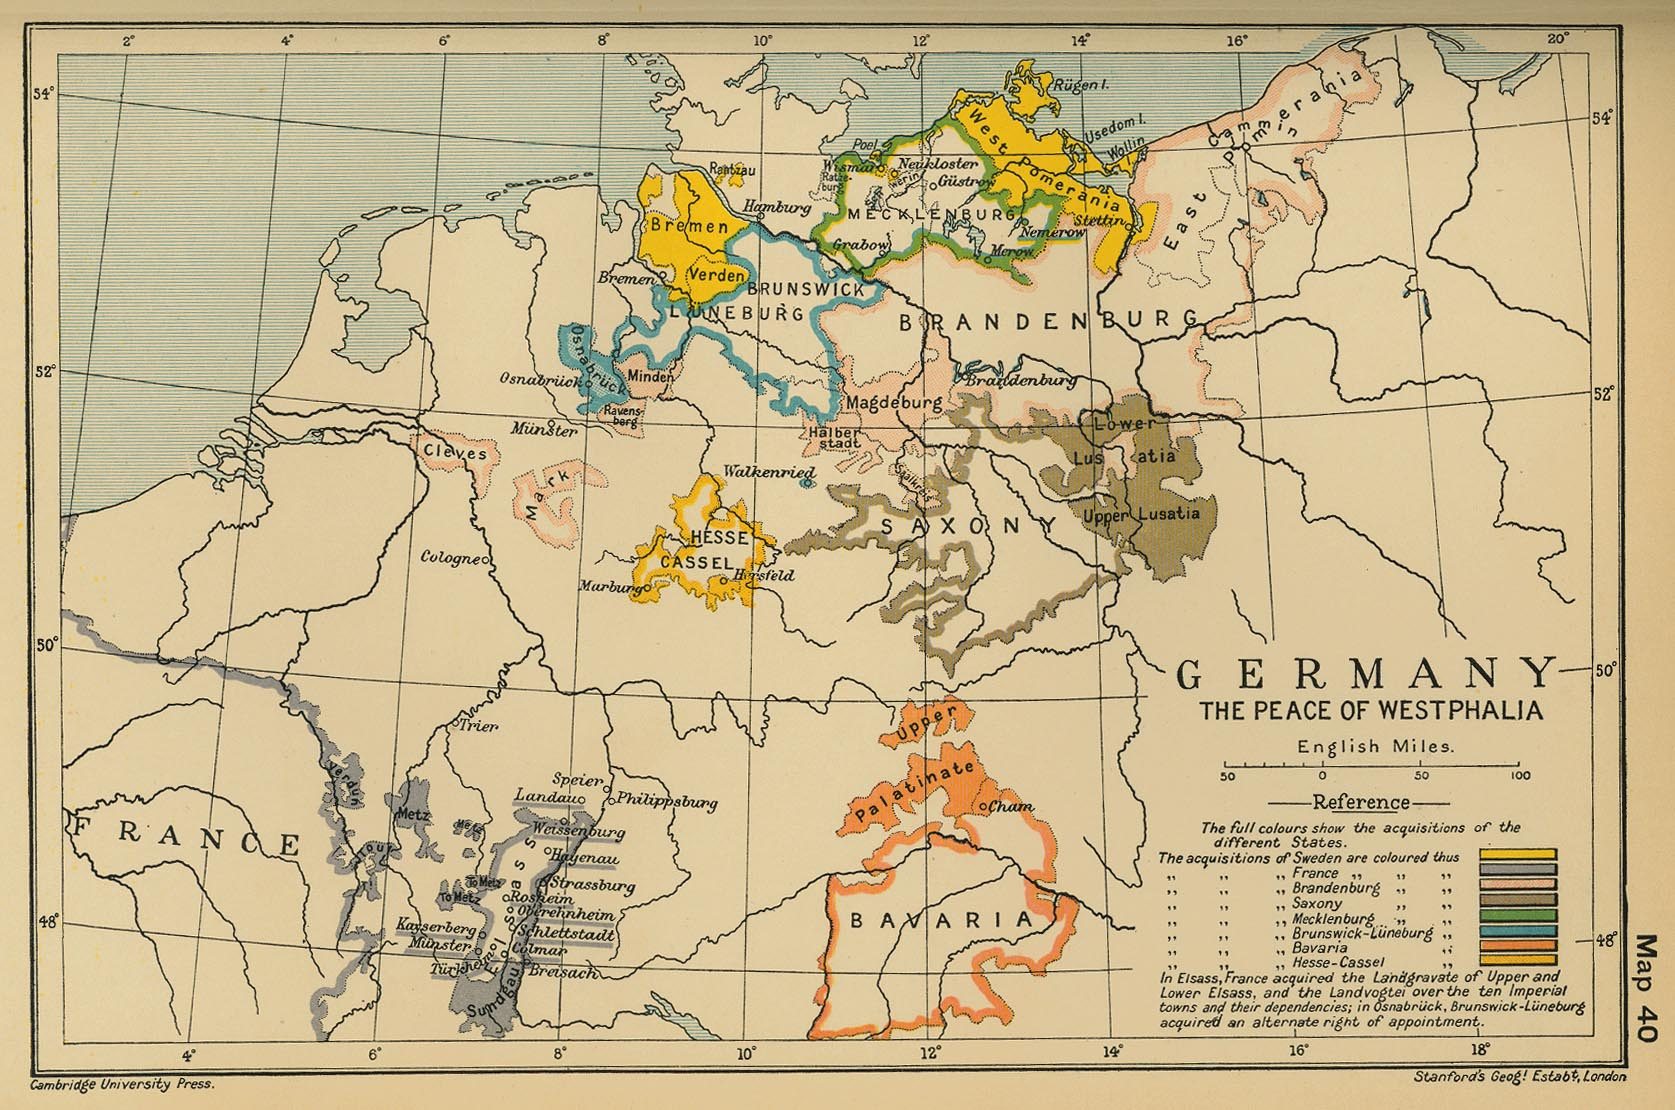 Germany: The Peace of Westphalia 1648